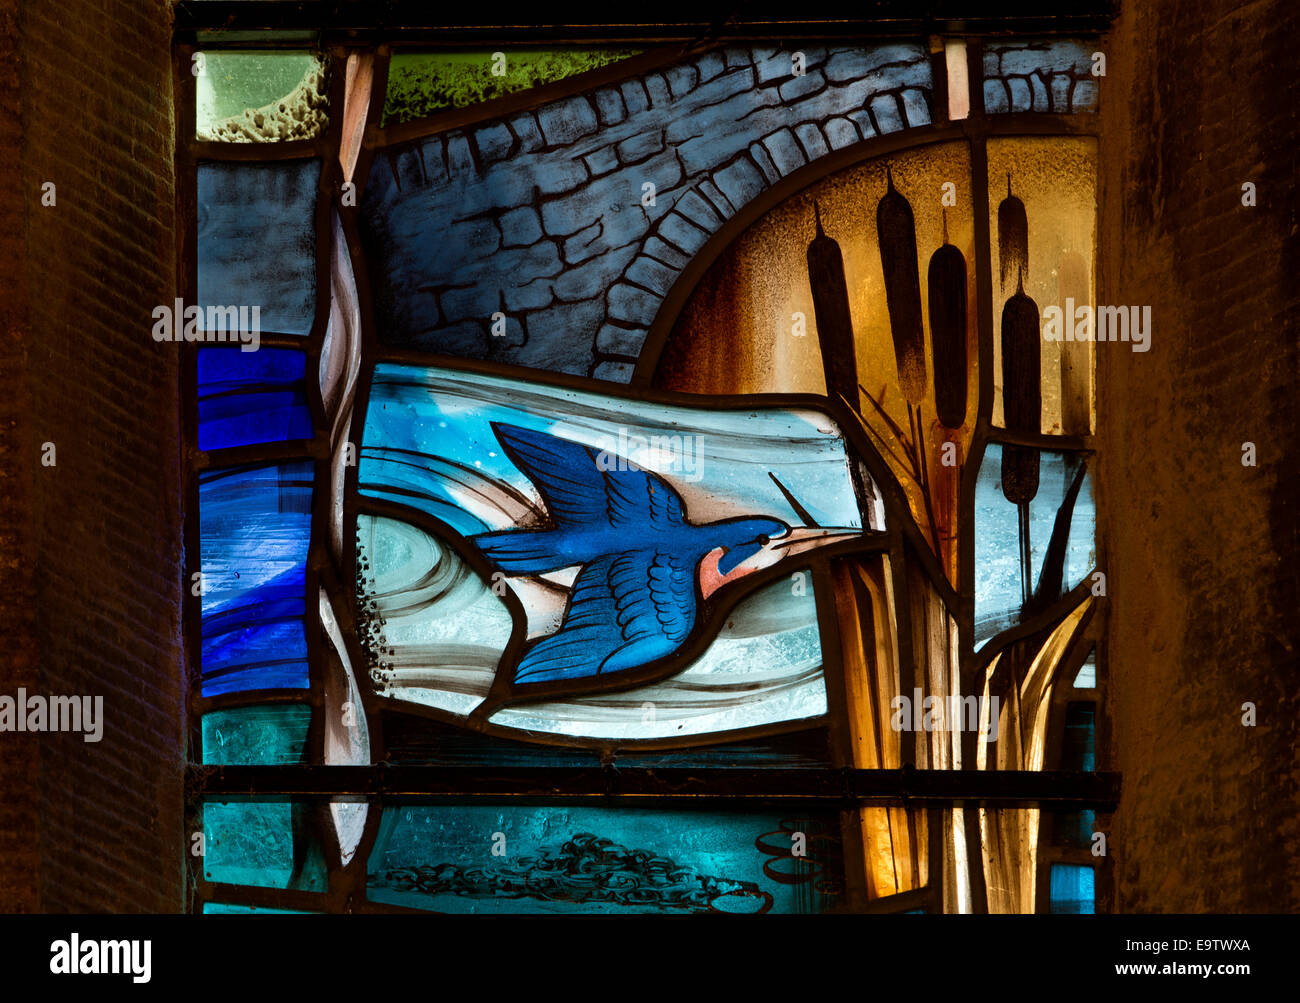 Kingfisher detail of stained glass window by Alfred Fisher, St. Leonard`s Church, Thorpe, Derbyshire, England, UK - Stock Image